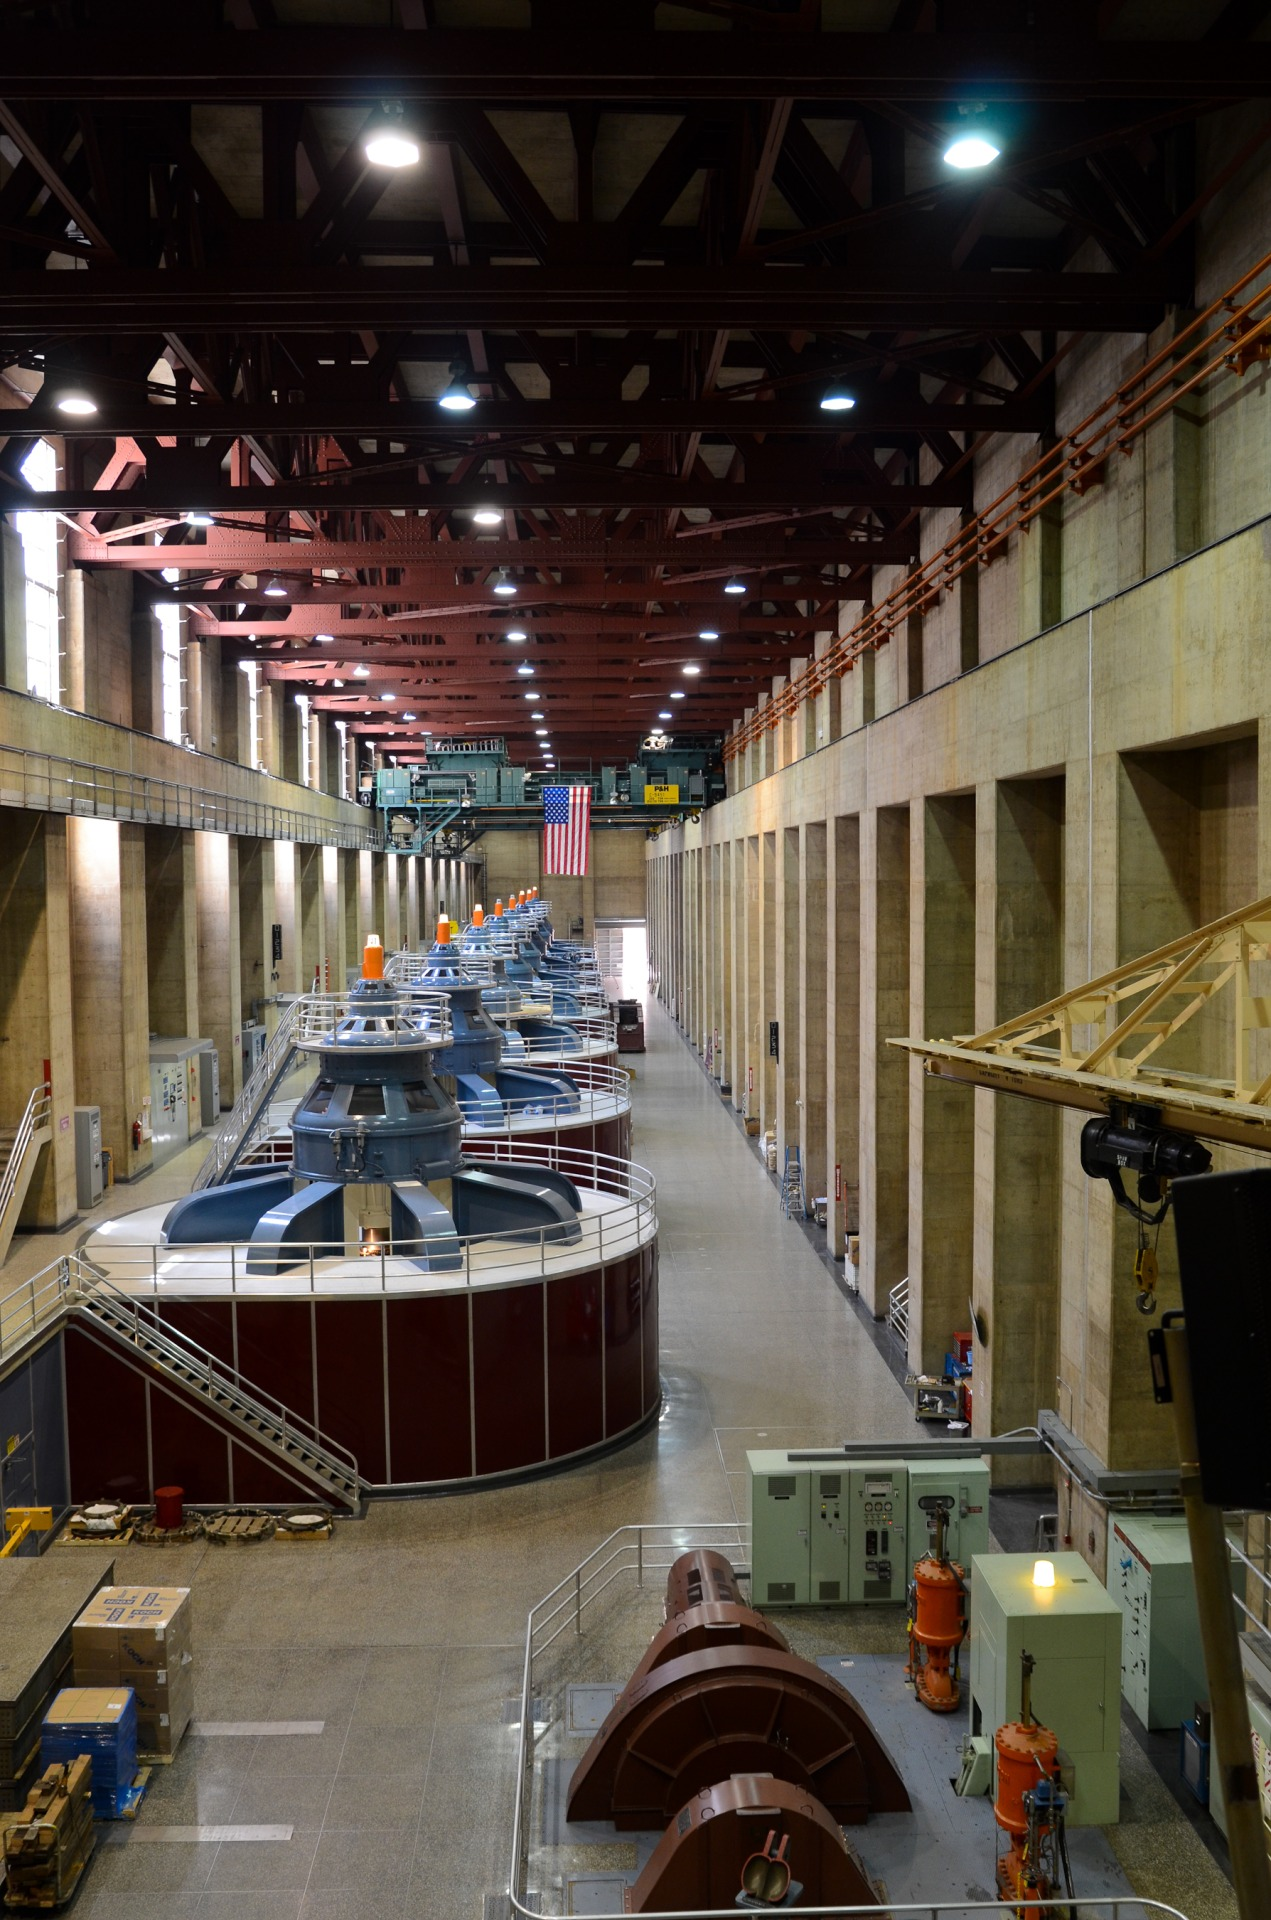 Inside Hoover Dam's power plant